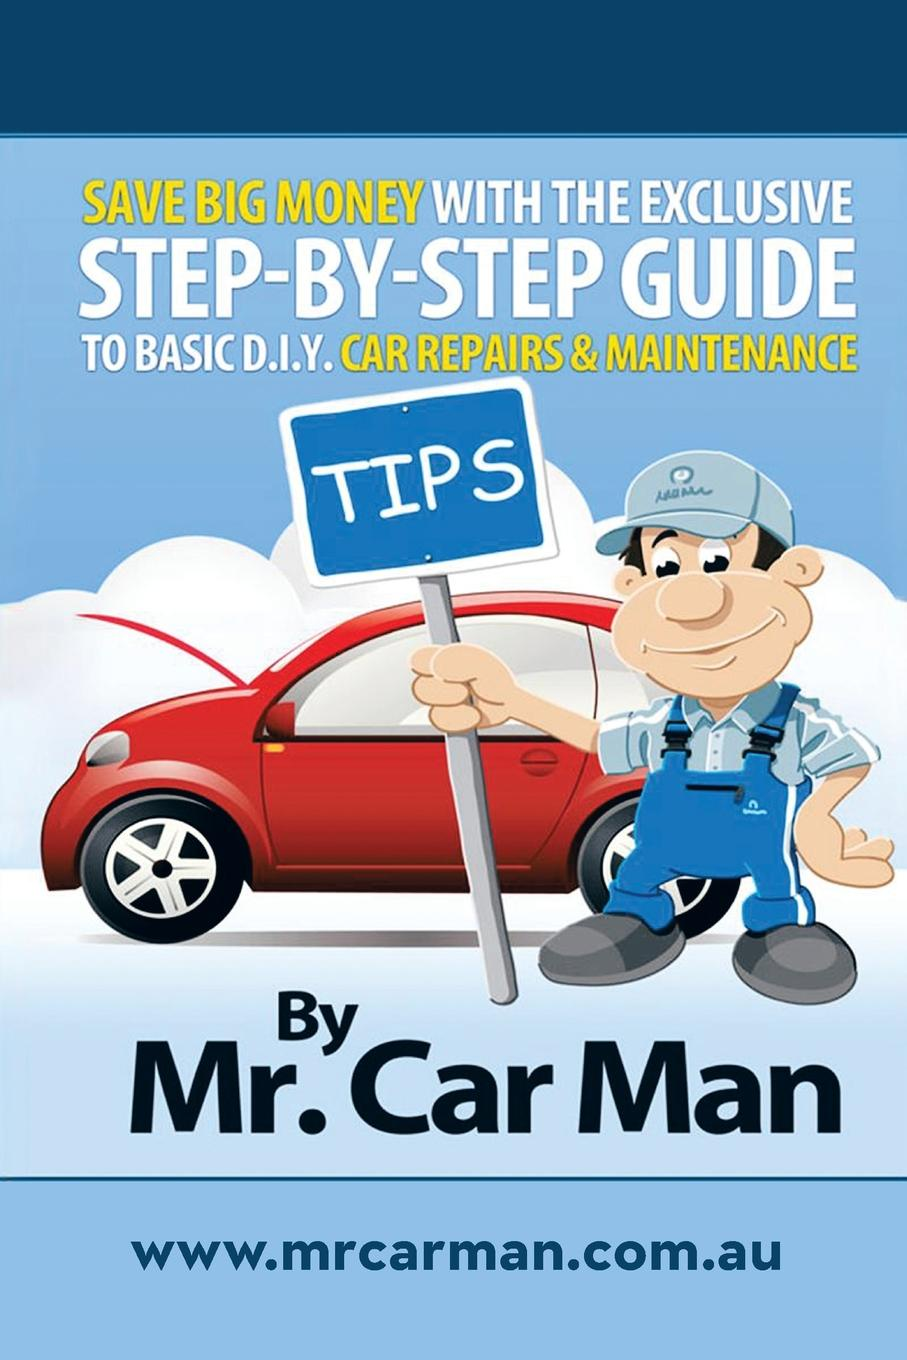 MR Car Man Save Big Money with the Exclusive Step-By-Step Guide to Basic D.I.Y. Car Repairs & Maintenance